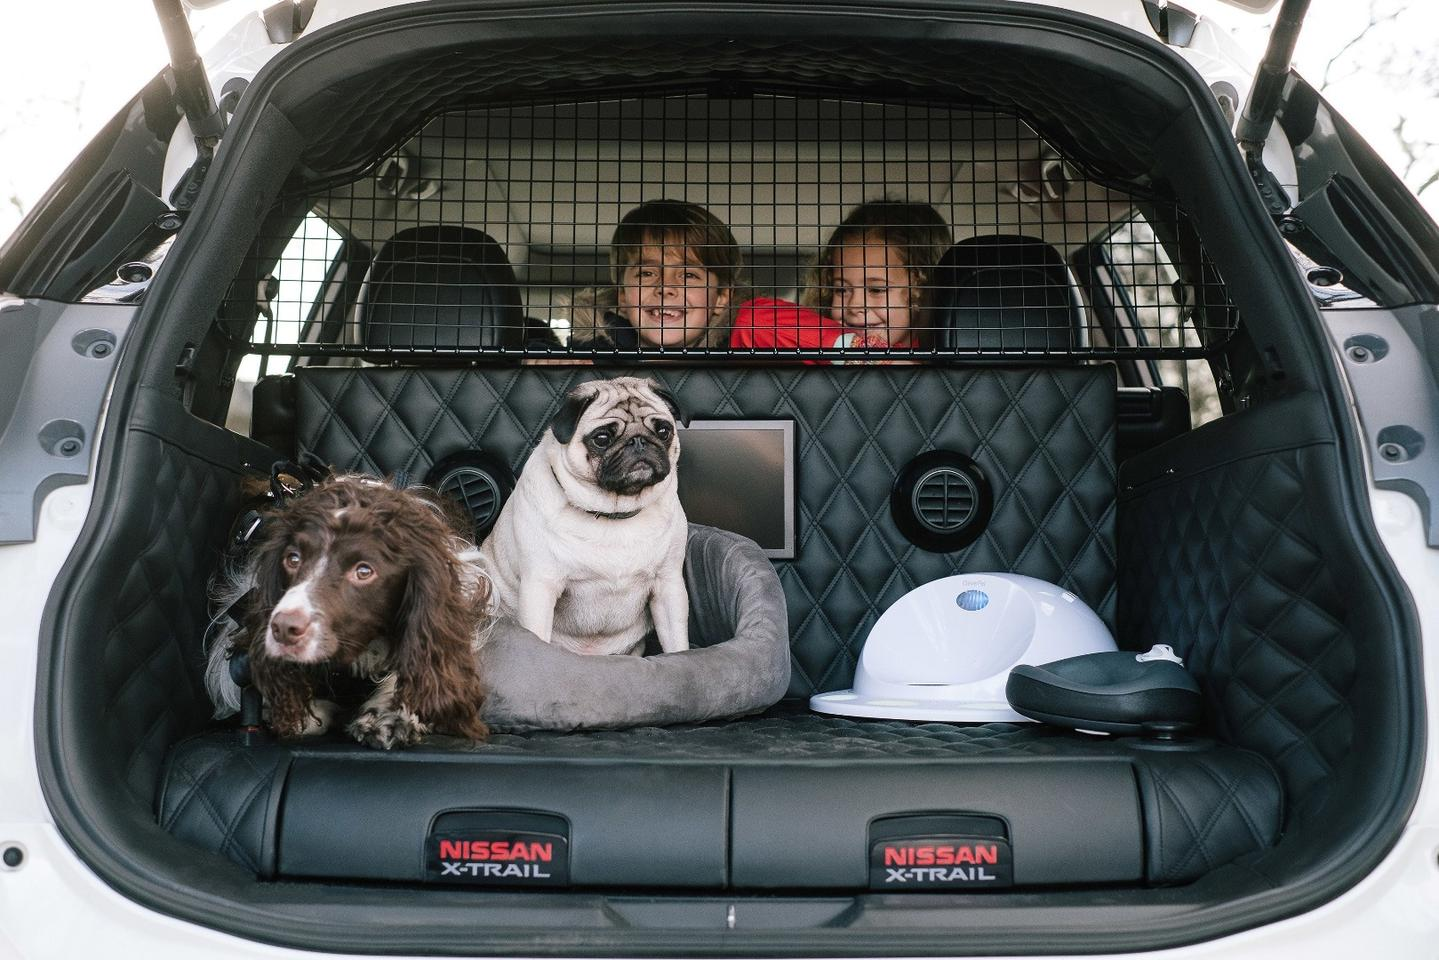 The Nissan X-Trail 4Dogs concept keeps two dogs comfy on drives of all kinds